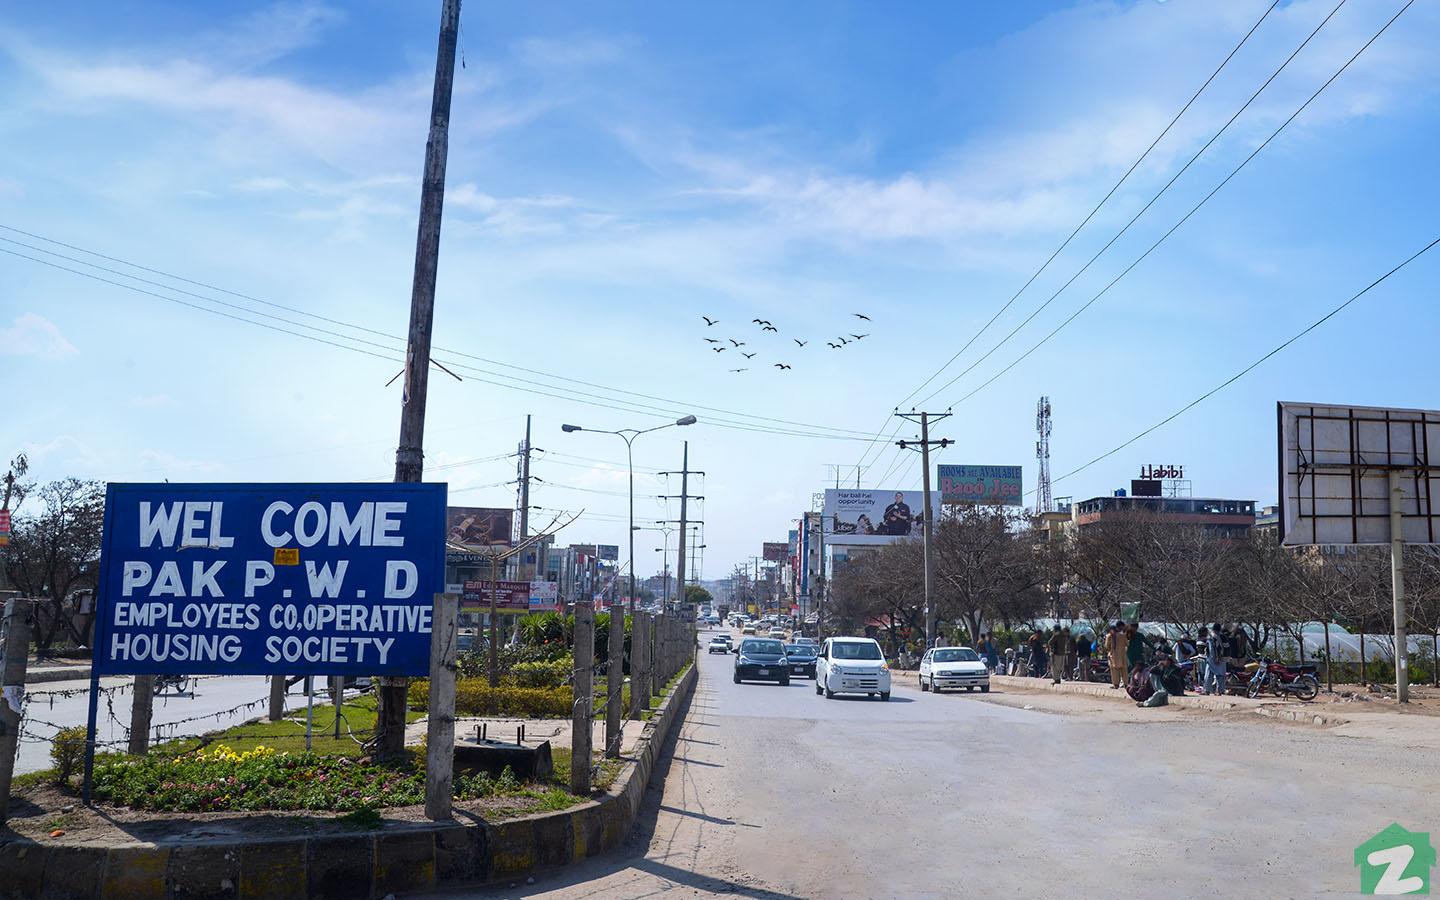 PWD Housing Scheme Islamabad is a well-developed and densely populated society